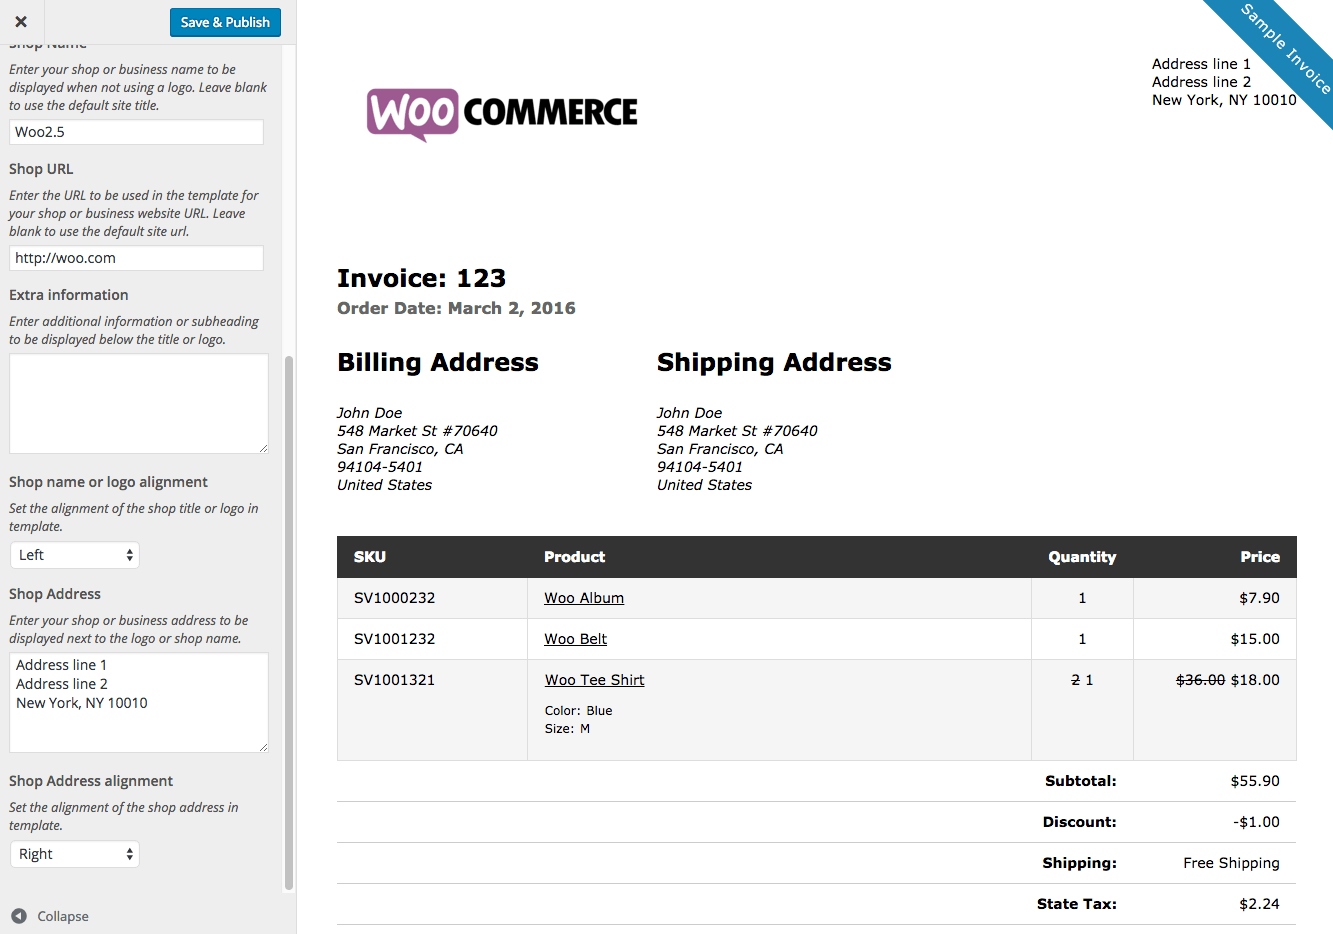 Hucareus  Unusual Woocommerce Print Invoices Amp Packing Lists  Woocommerce Docs With Excellent Woocommerce Print Invoices  Packing Lists Customizer With Attractive Easy Invoice Template Also How To Send Invoice In Addition When Do You Send An Invoice And Que Es Invoice As Well As Nota Invoice Additionally Proforma Invoice And Commercial Invoice Difference From Docswoocommercecom With Hucareus  Excellent Woocommerce Print Invoices Amp Packing Lists  Woocommerce Docs With Attractive Woocommerce Print Invoices  Packing Lists Customizer And Unusual Easy Invoice Template Also How To Send Invoice In Addition When Do You Send An Invoice From Docswoocommercecom